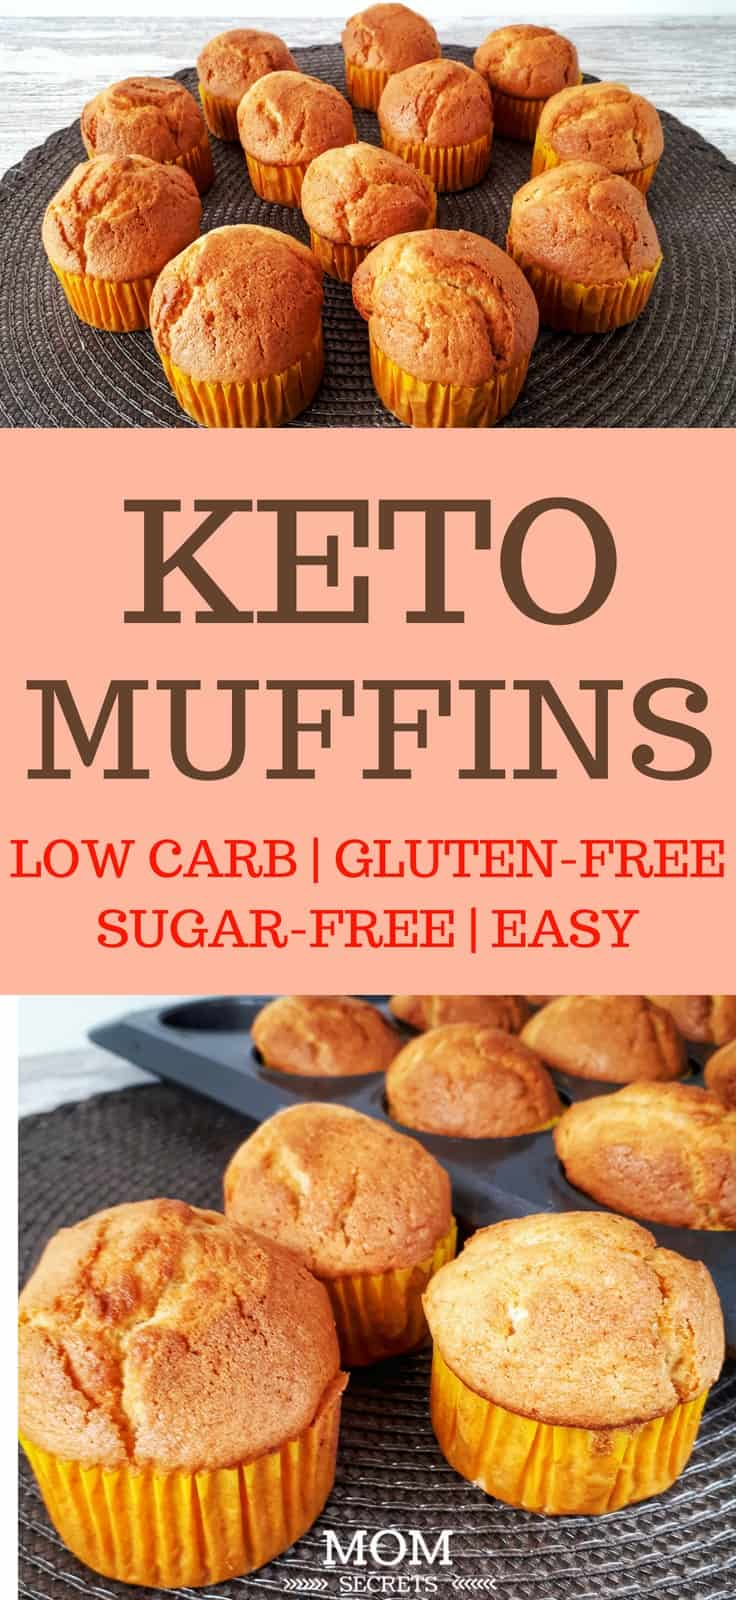 Quick Keto Breakfast On the Go - 15 Top Ideas for Fat Burning from the Morning!